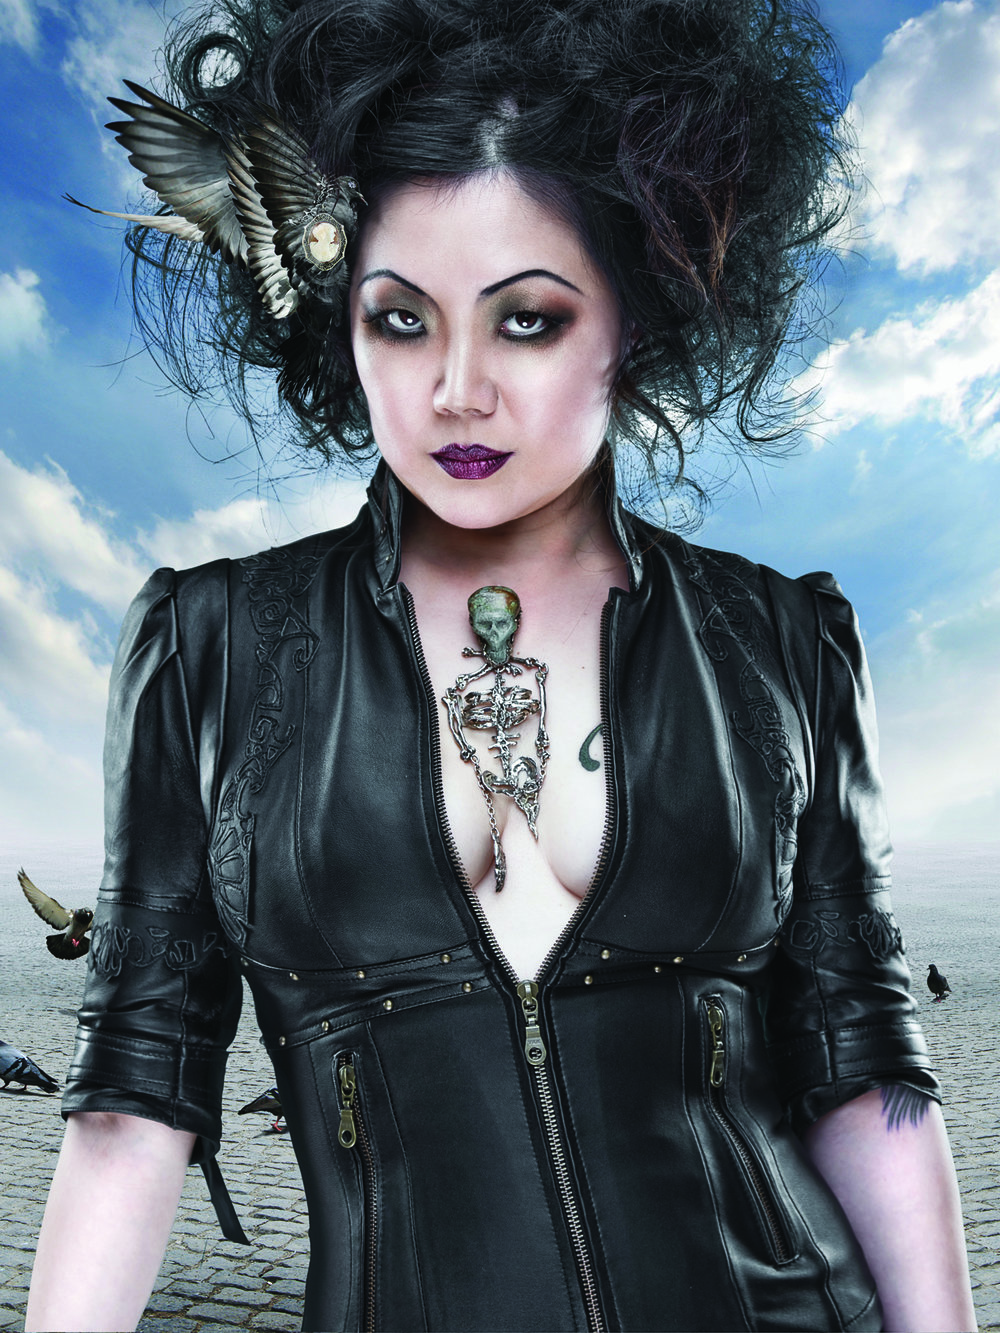 Margaret Cho: Coilhouse Magazine Cover and Editorial